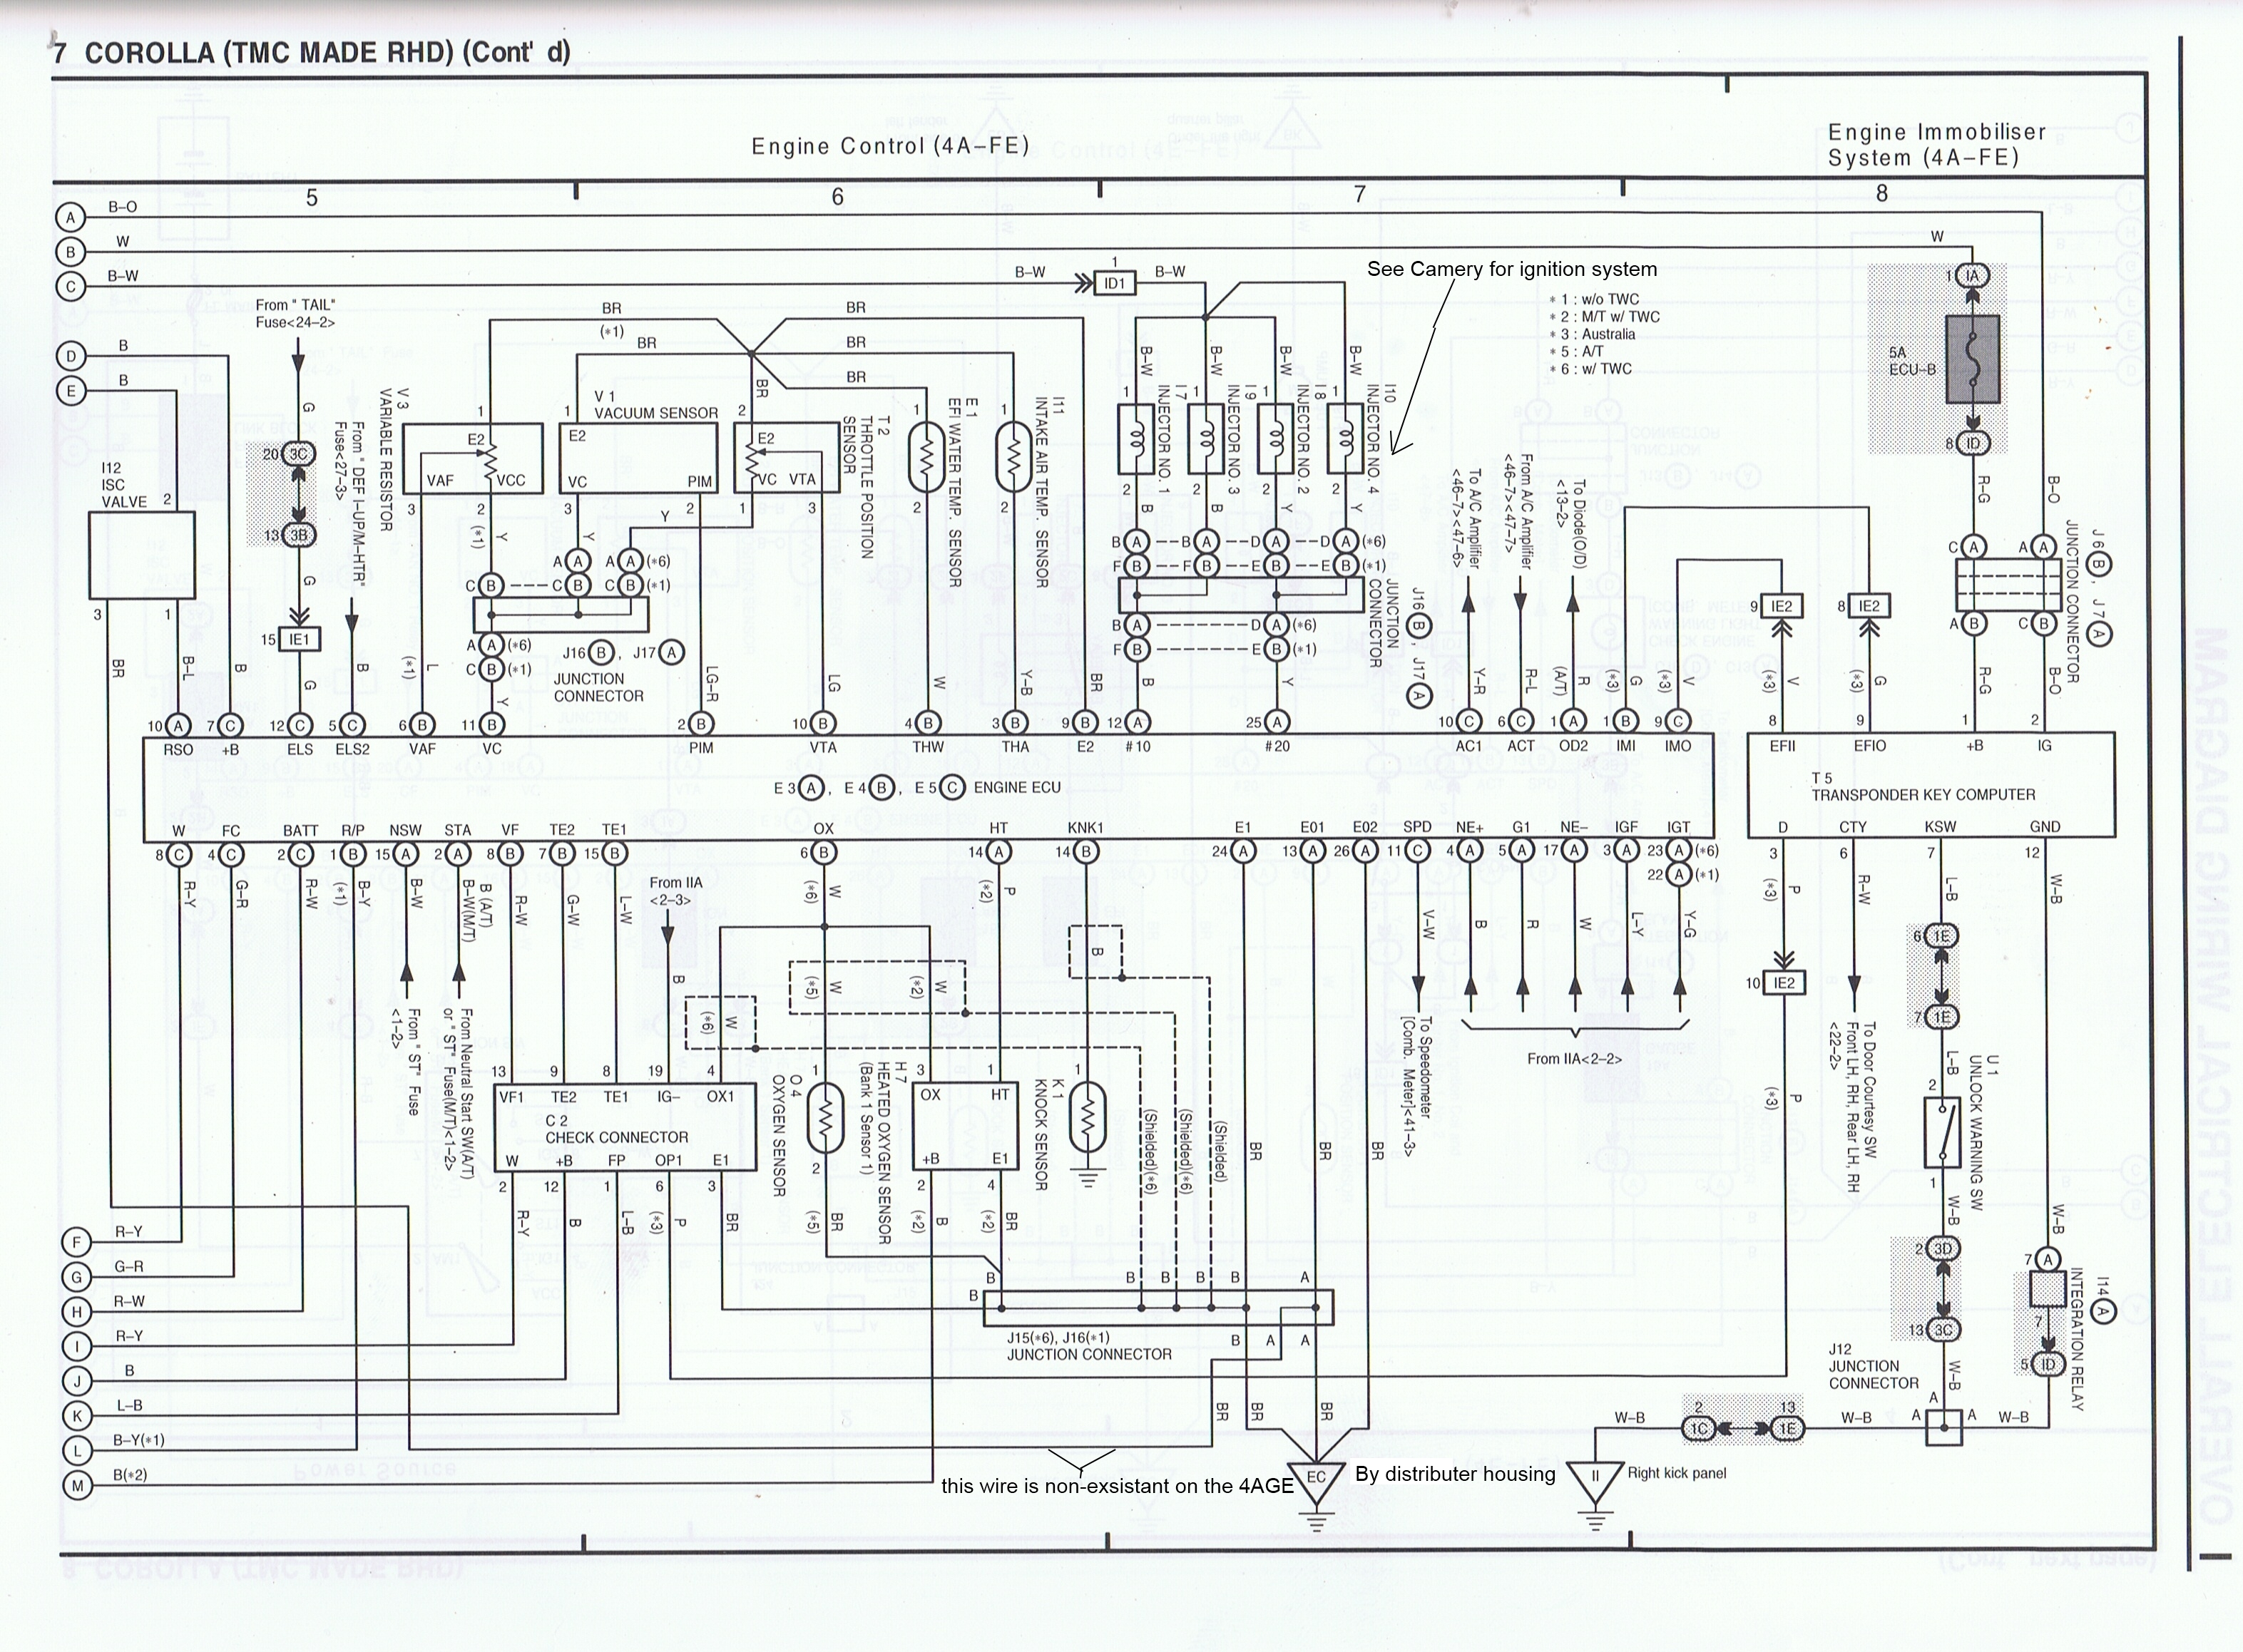 3sgte wiring diagram sgte st wiring diagram images sgte wiring age ecu wiring diagram images toyota age v wiring diagram me2kimiblogspotcom 4age silvertop wiring and conversion